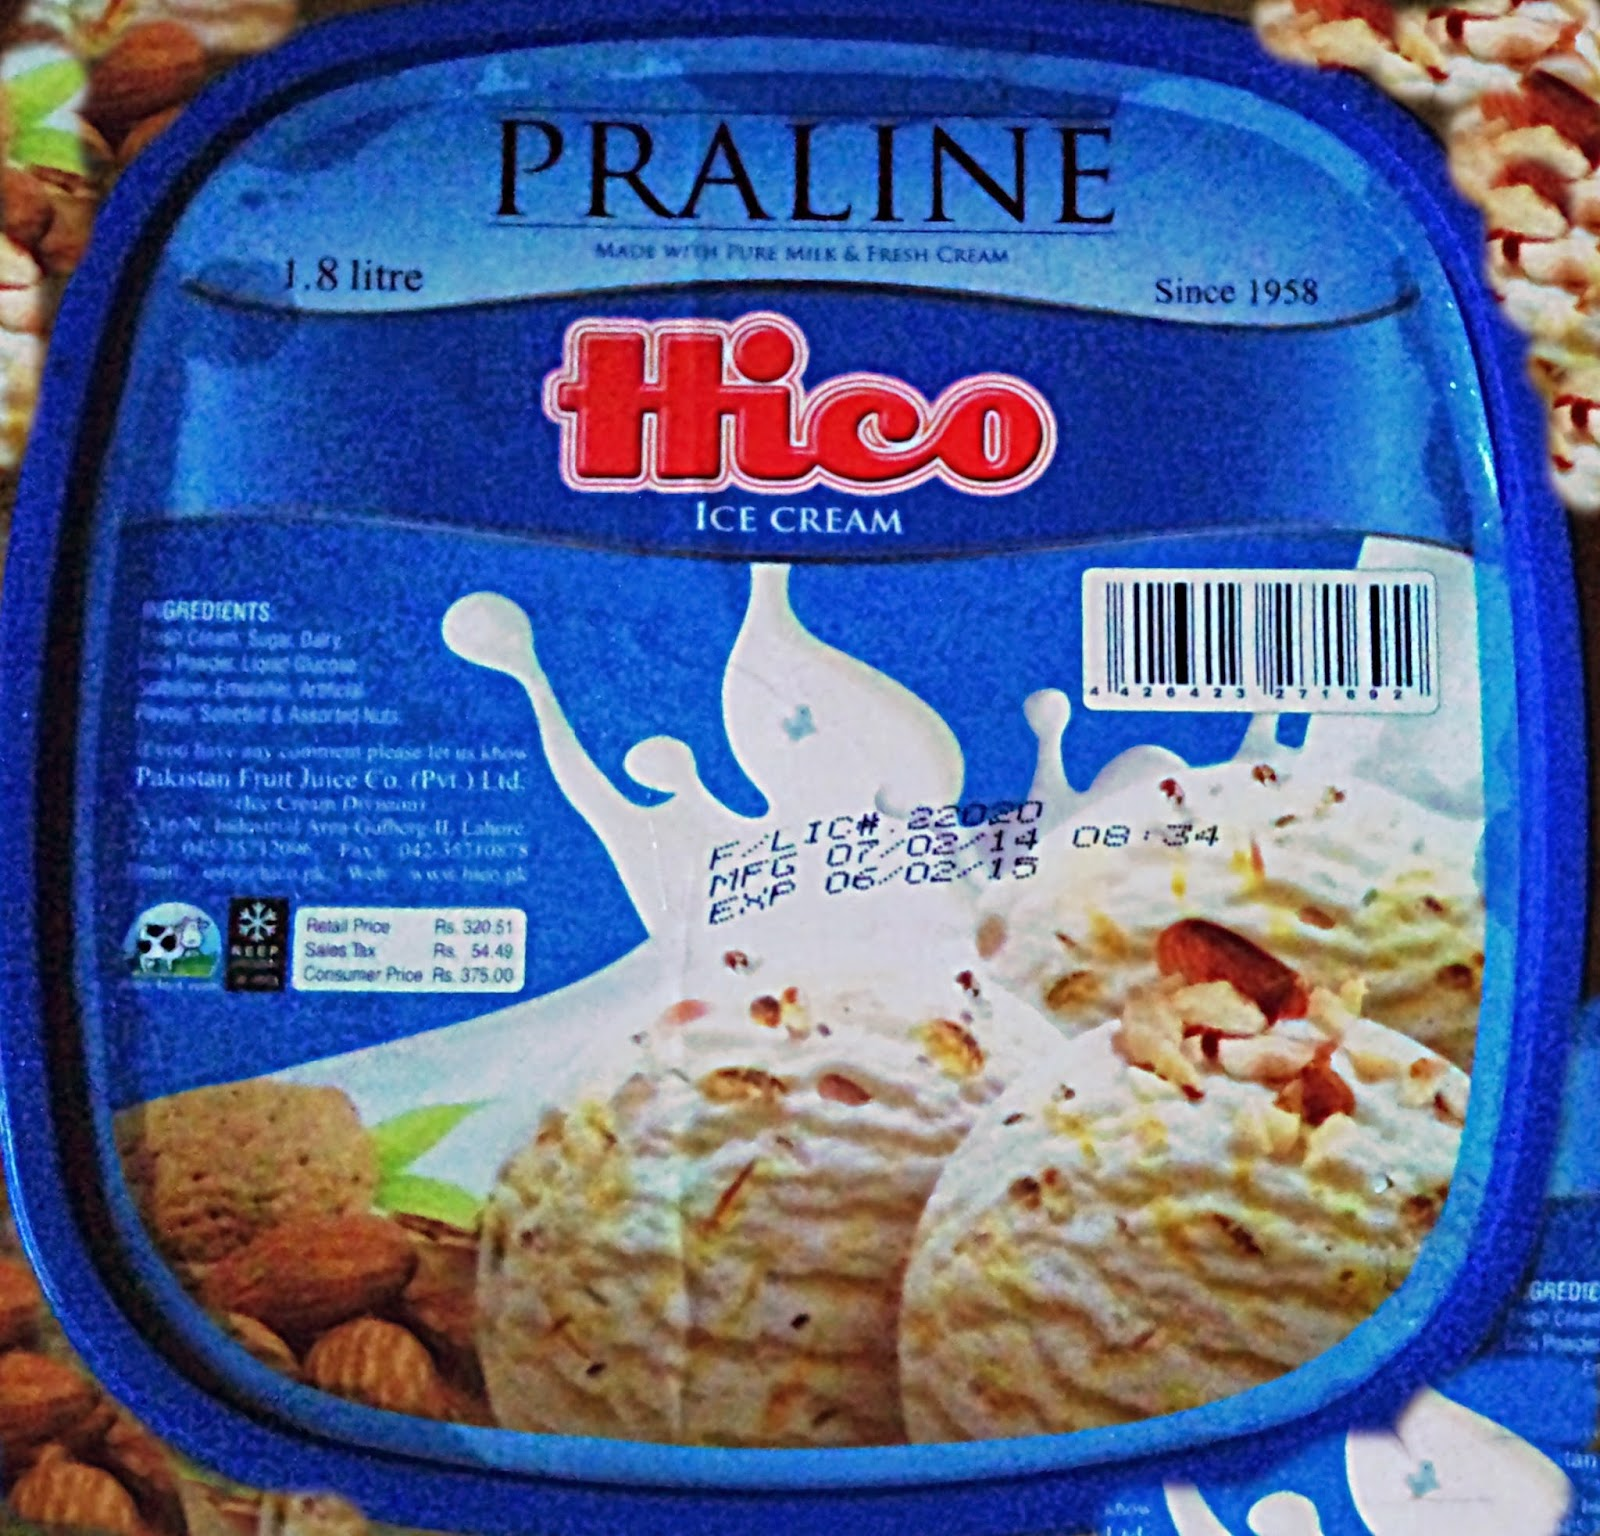 Hico PraLine Ice Cream